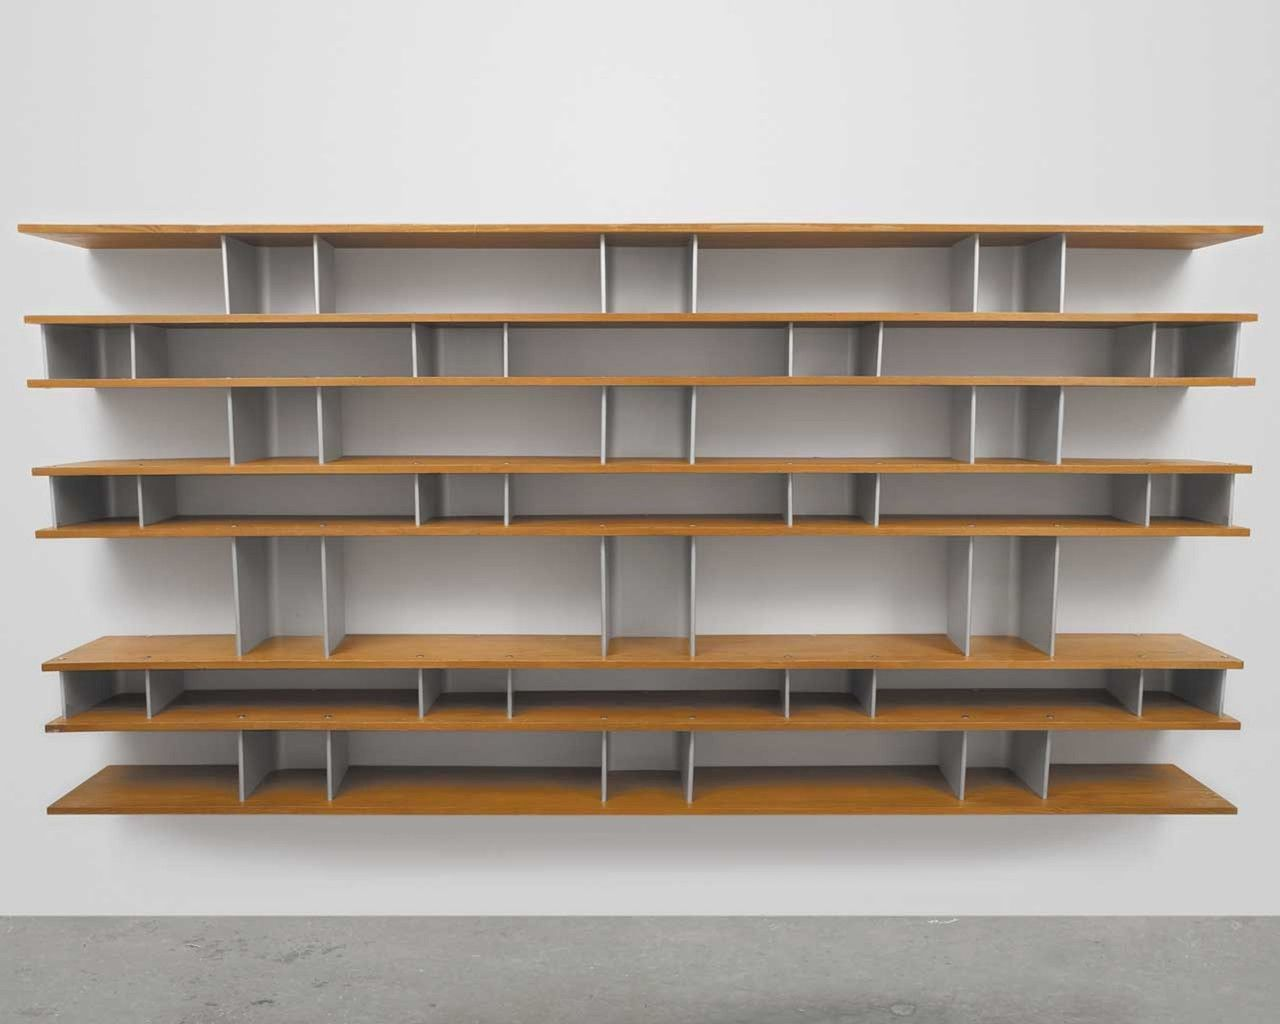 Comely office bookshelves innovation hot black bookshelves comely office bookshelves innovation hot black bookshelves stunning furnishings concept aluminum and oak wall mounted amipublicfo Gallery